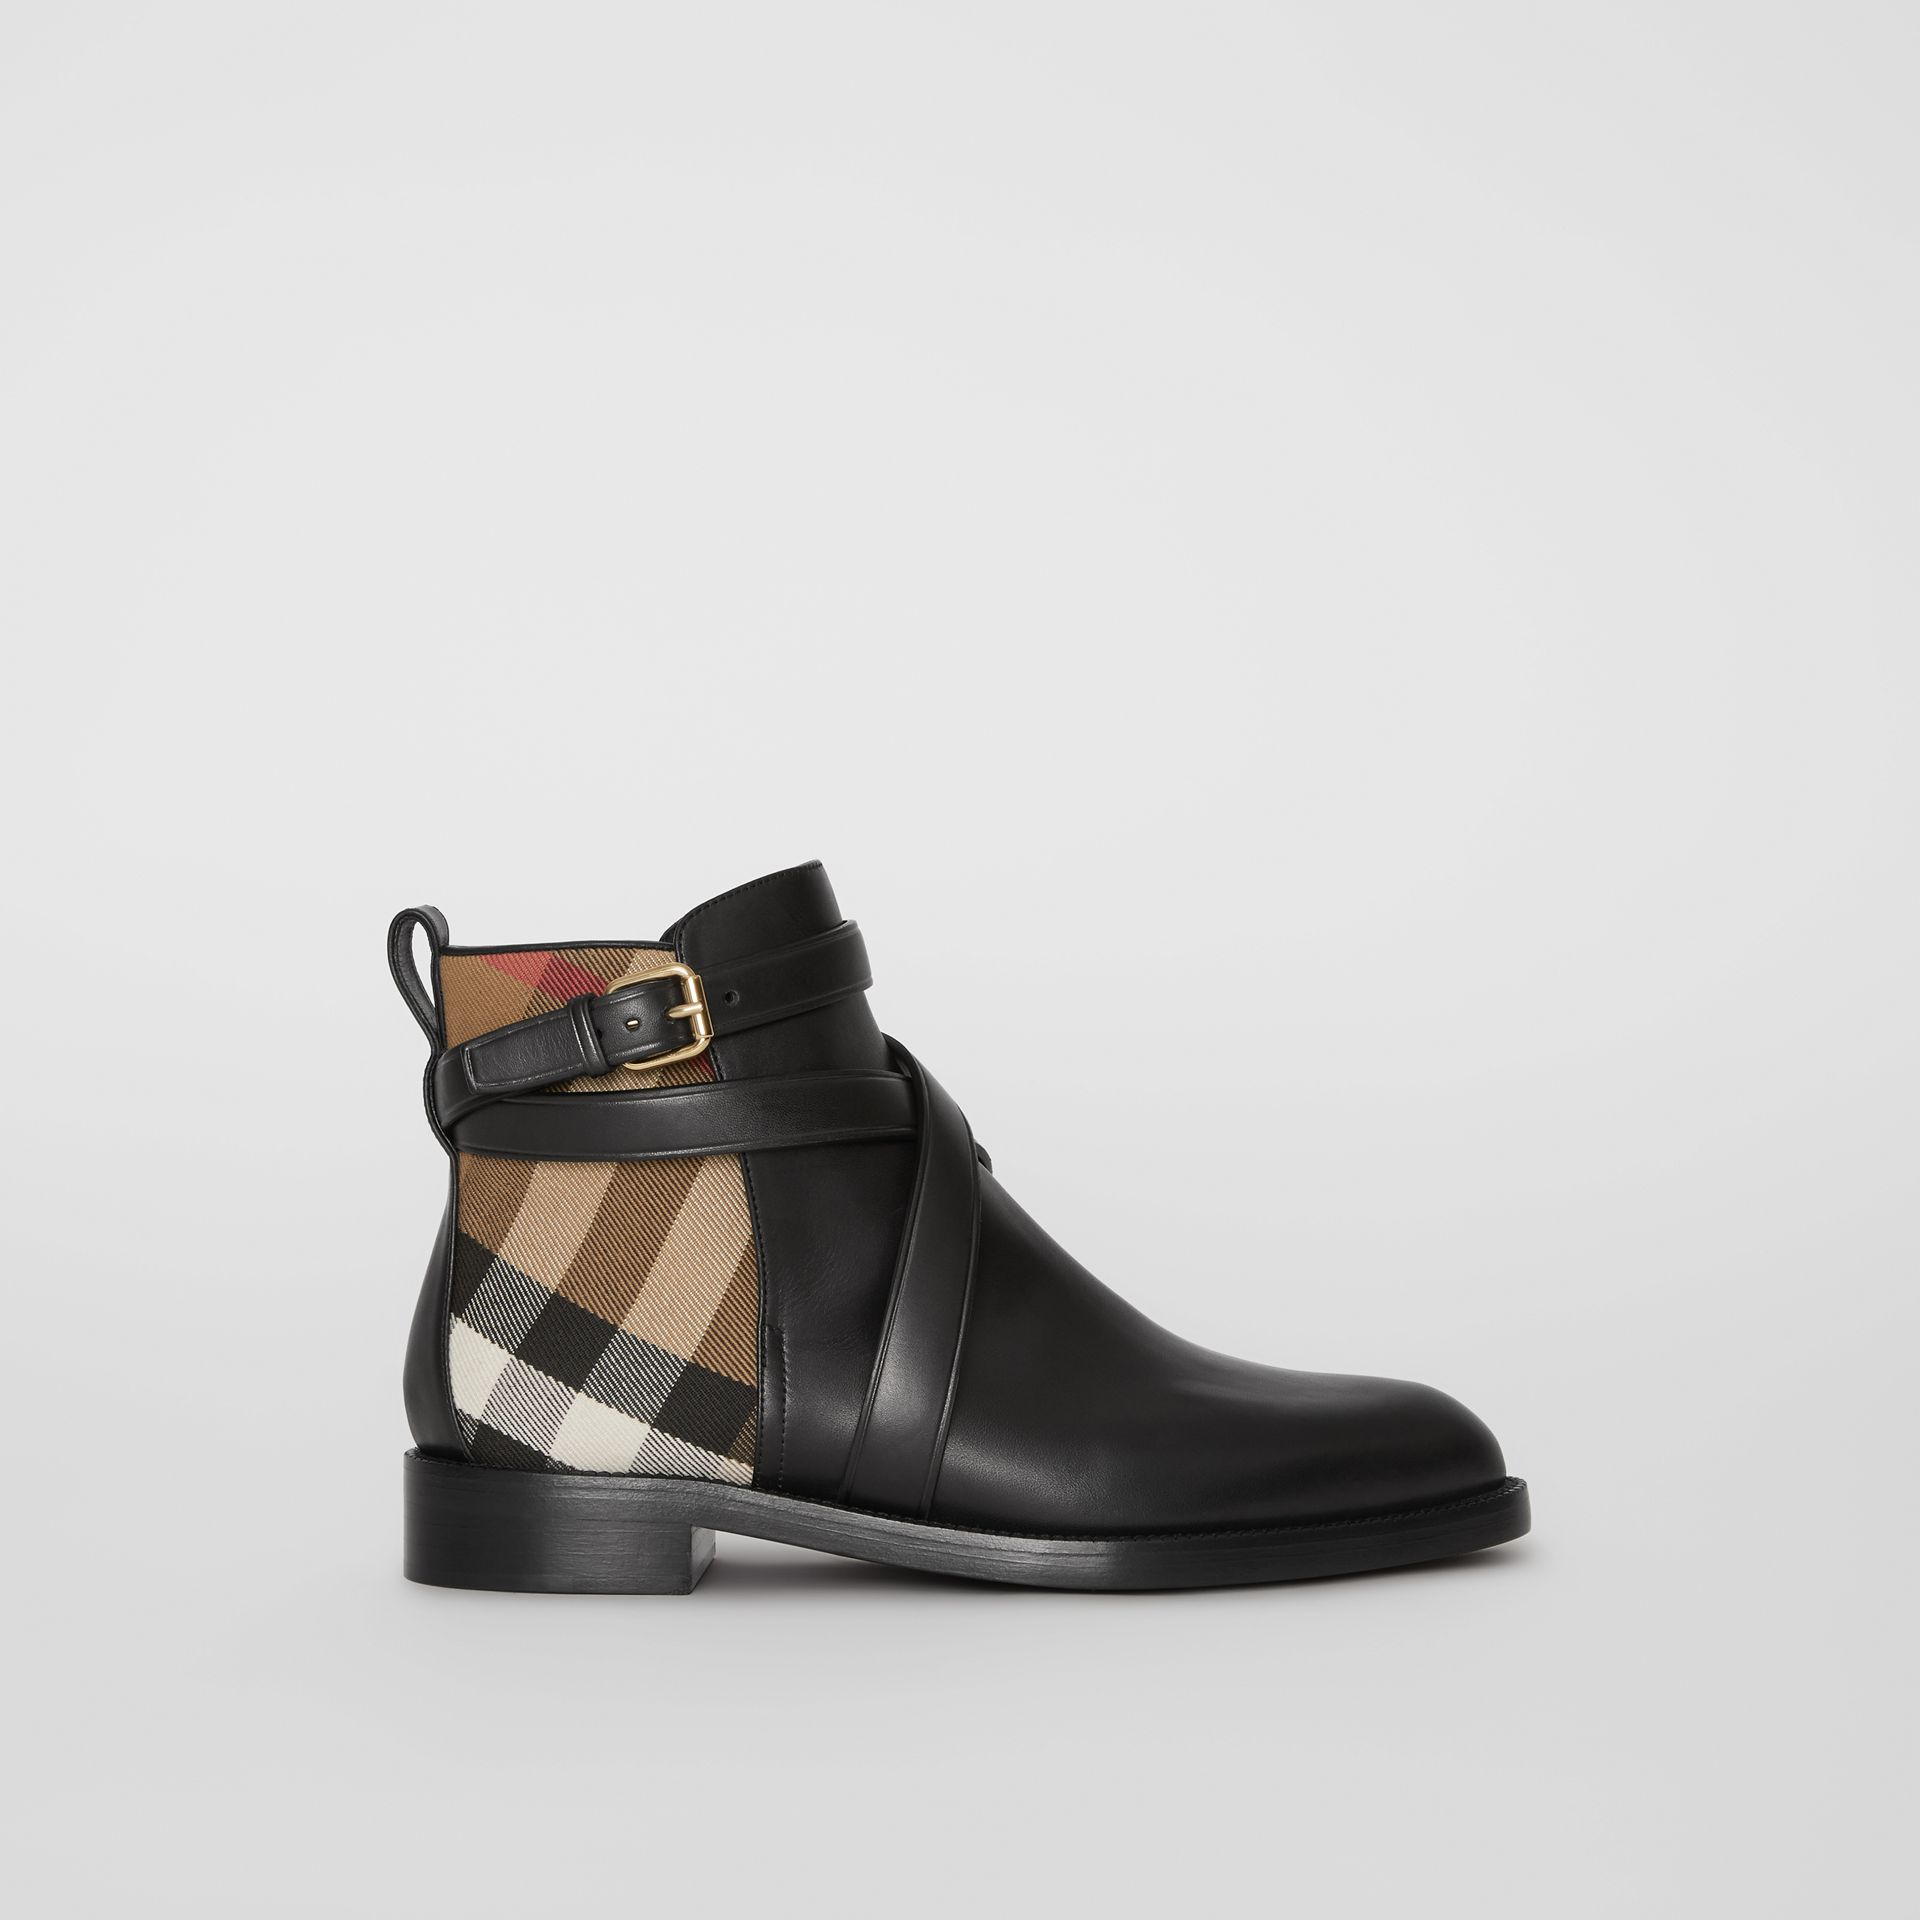 House Check and Leather Ankle Boots in Black - Women | Burberry - gallery image 5